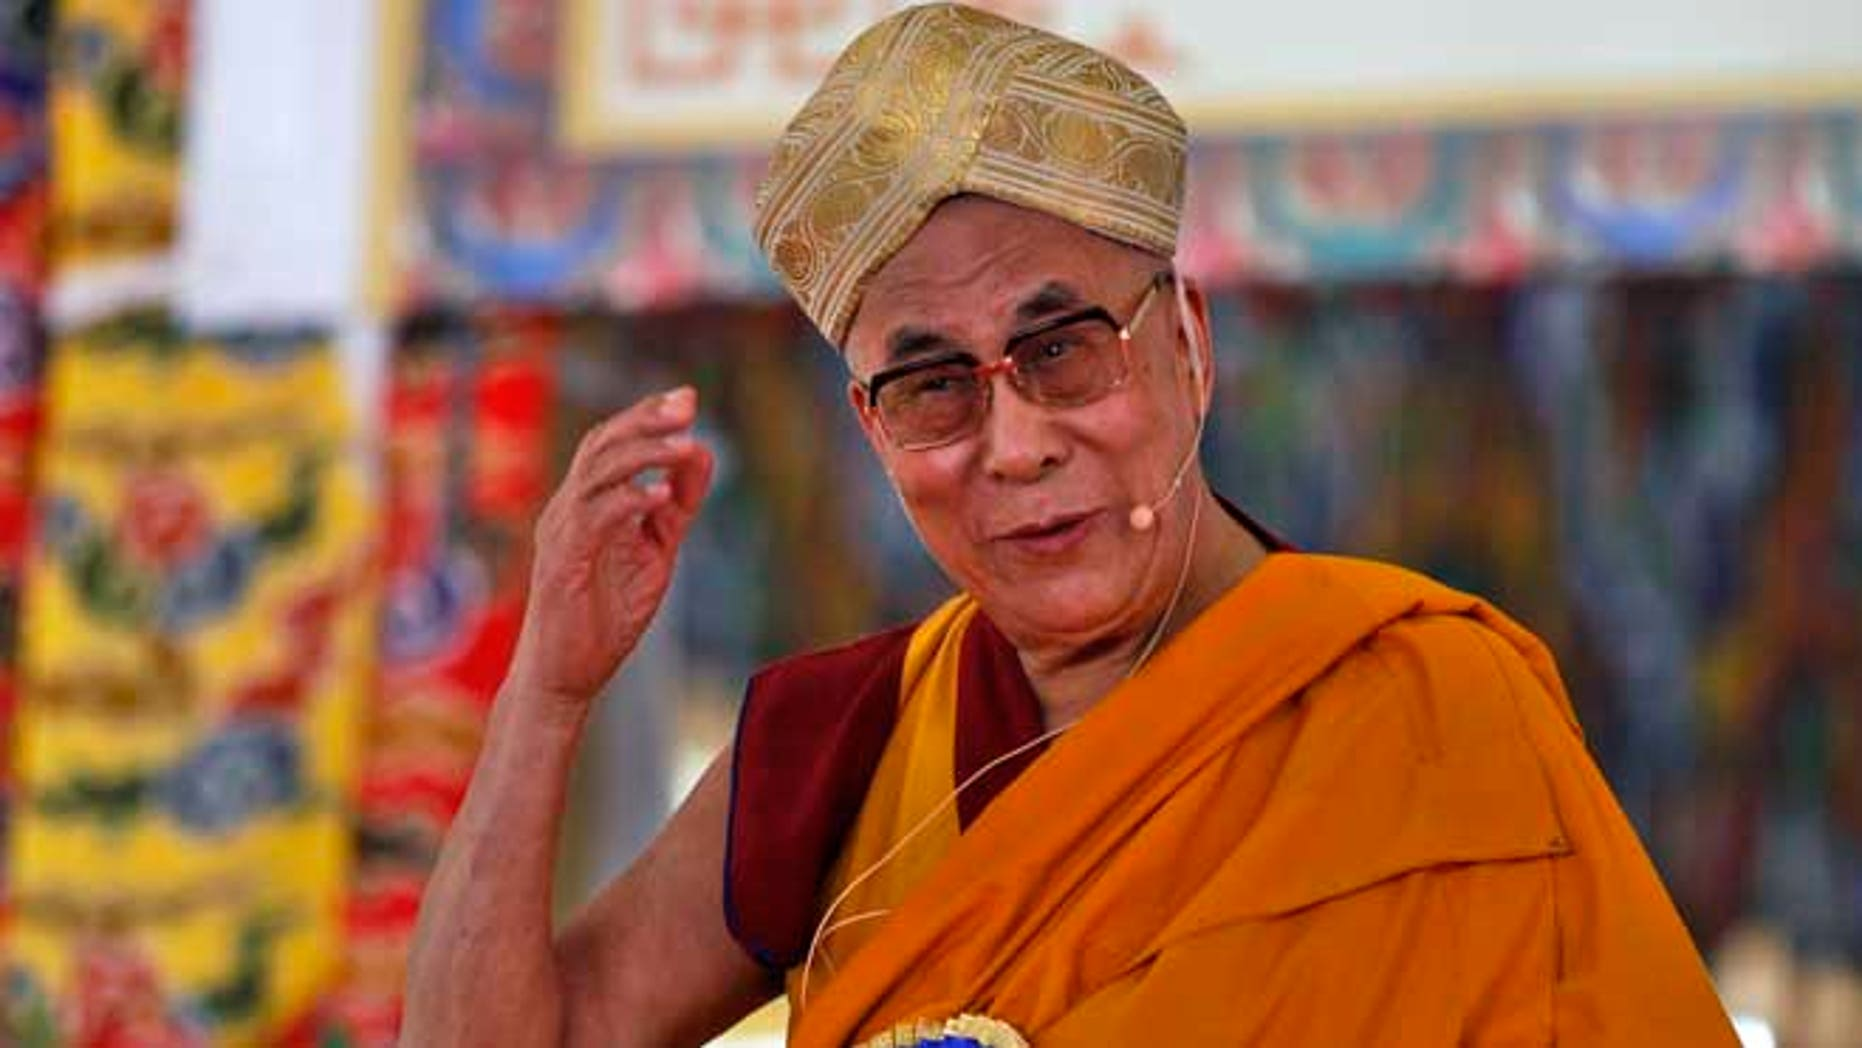 July 6, 2013: Tibetan spiritual leader the Dalai Lama speaks during an event organized to celebrate his 78th birthday at a Tibetan Buddhist monastery in Bylakuppe, about 220 kilometers (137 miles) southwest of Bangalore, India.